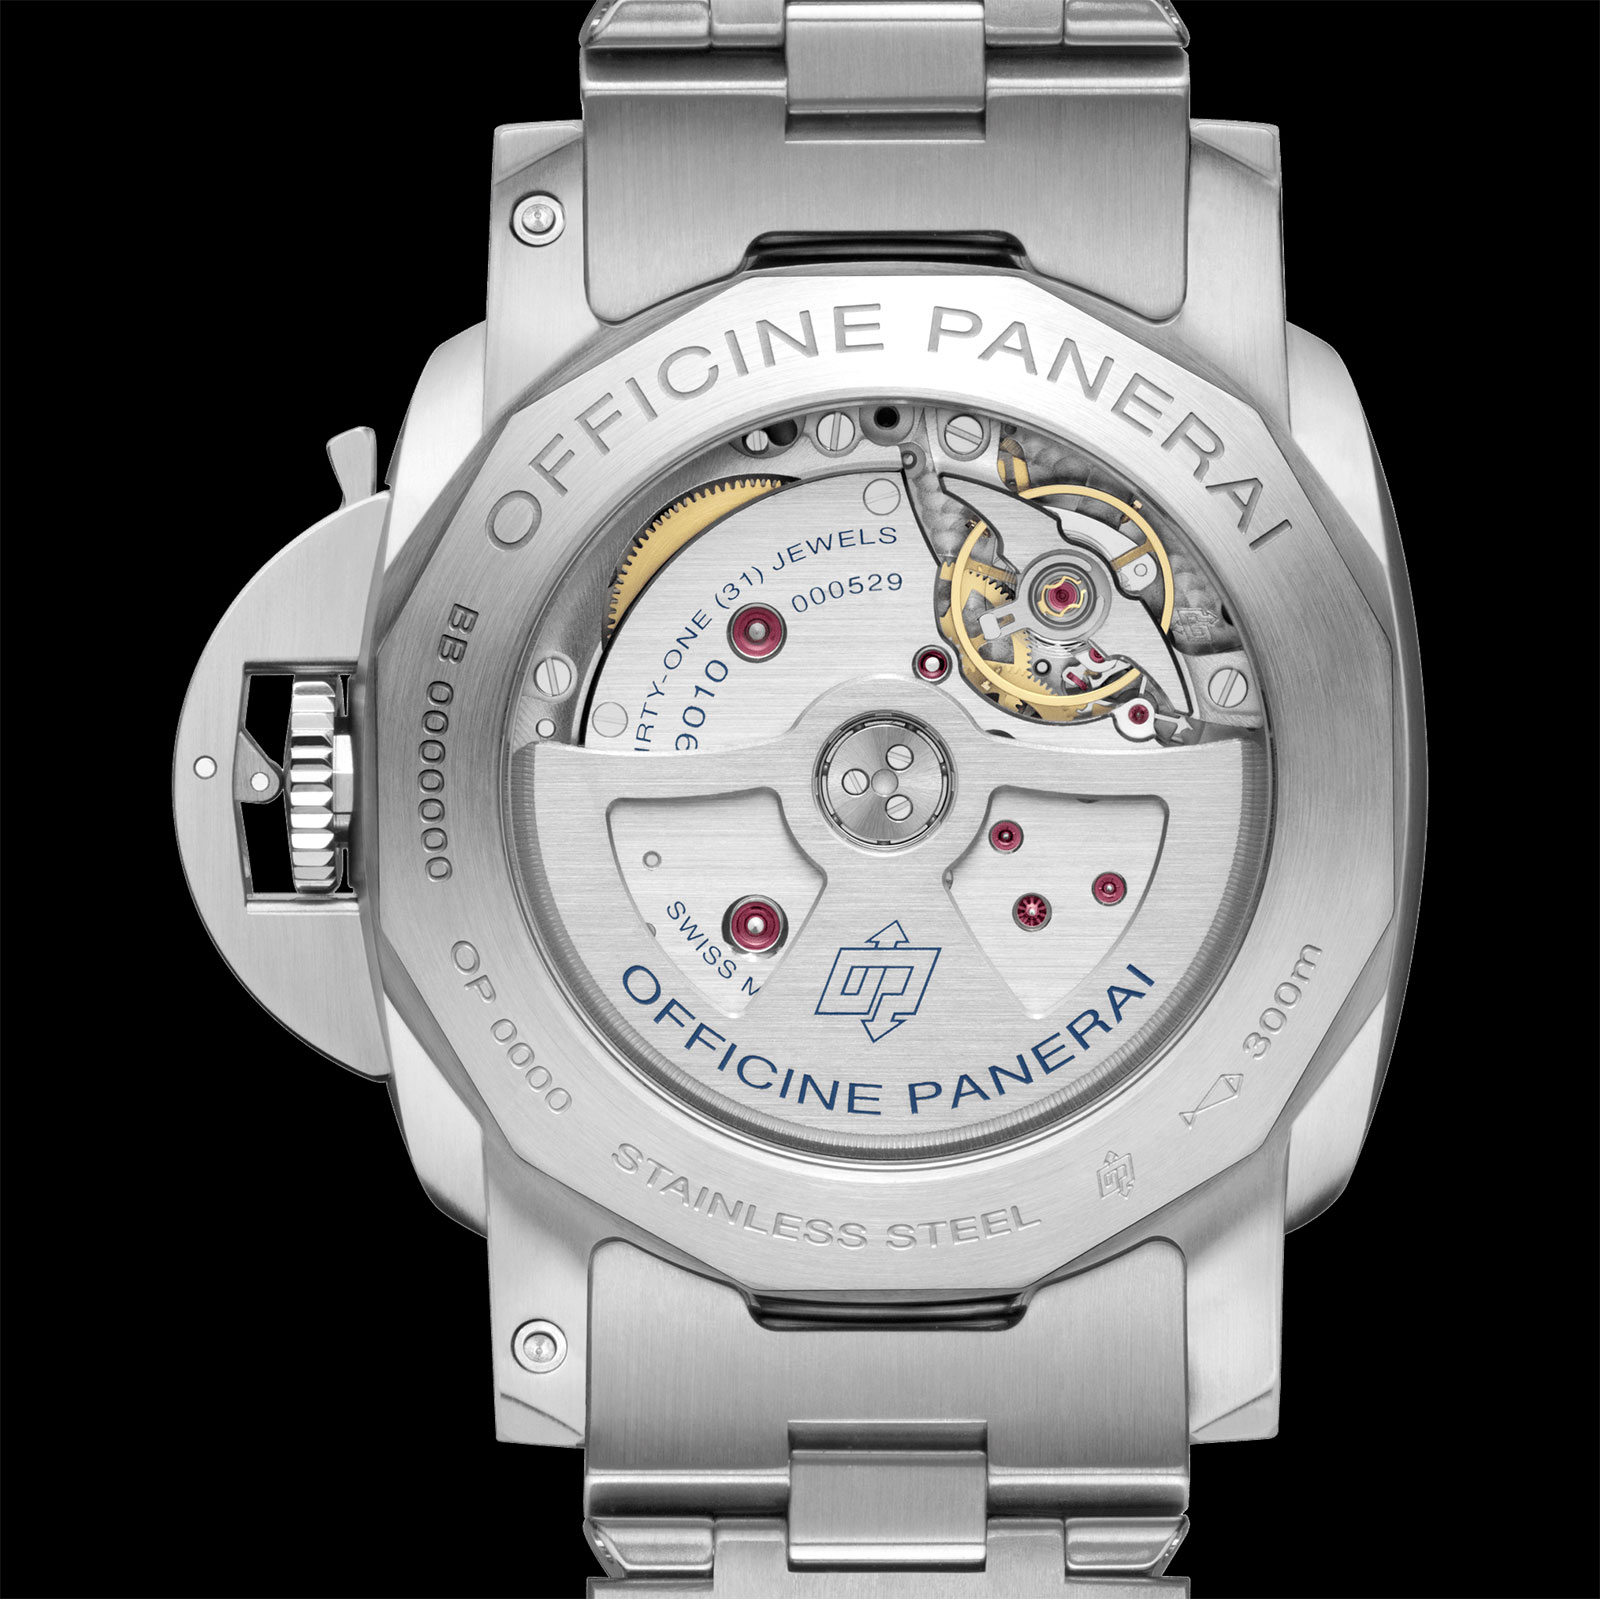 Panerai Luminor silver PAM978 P9010